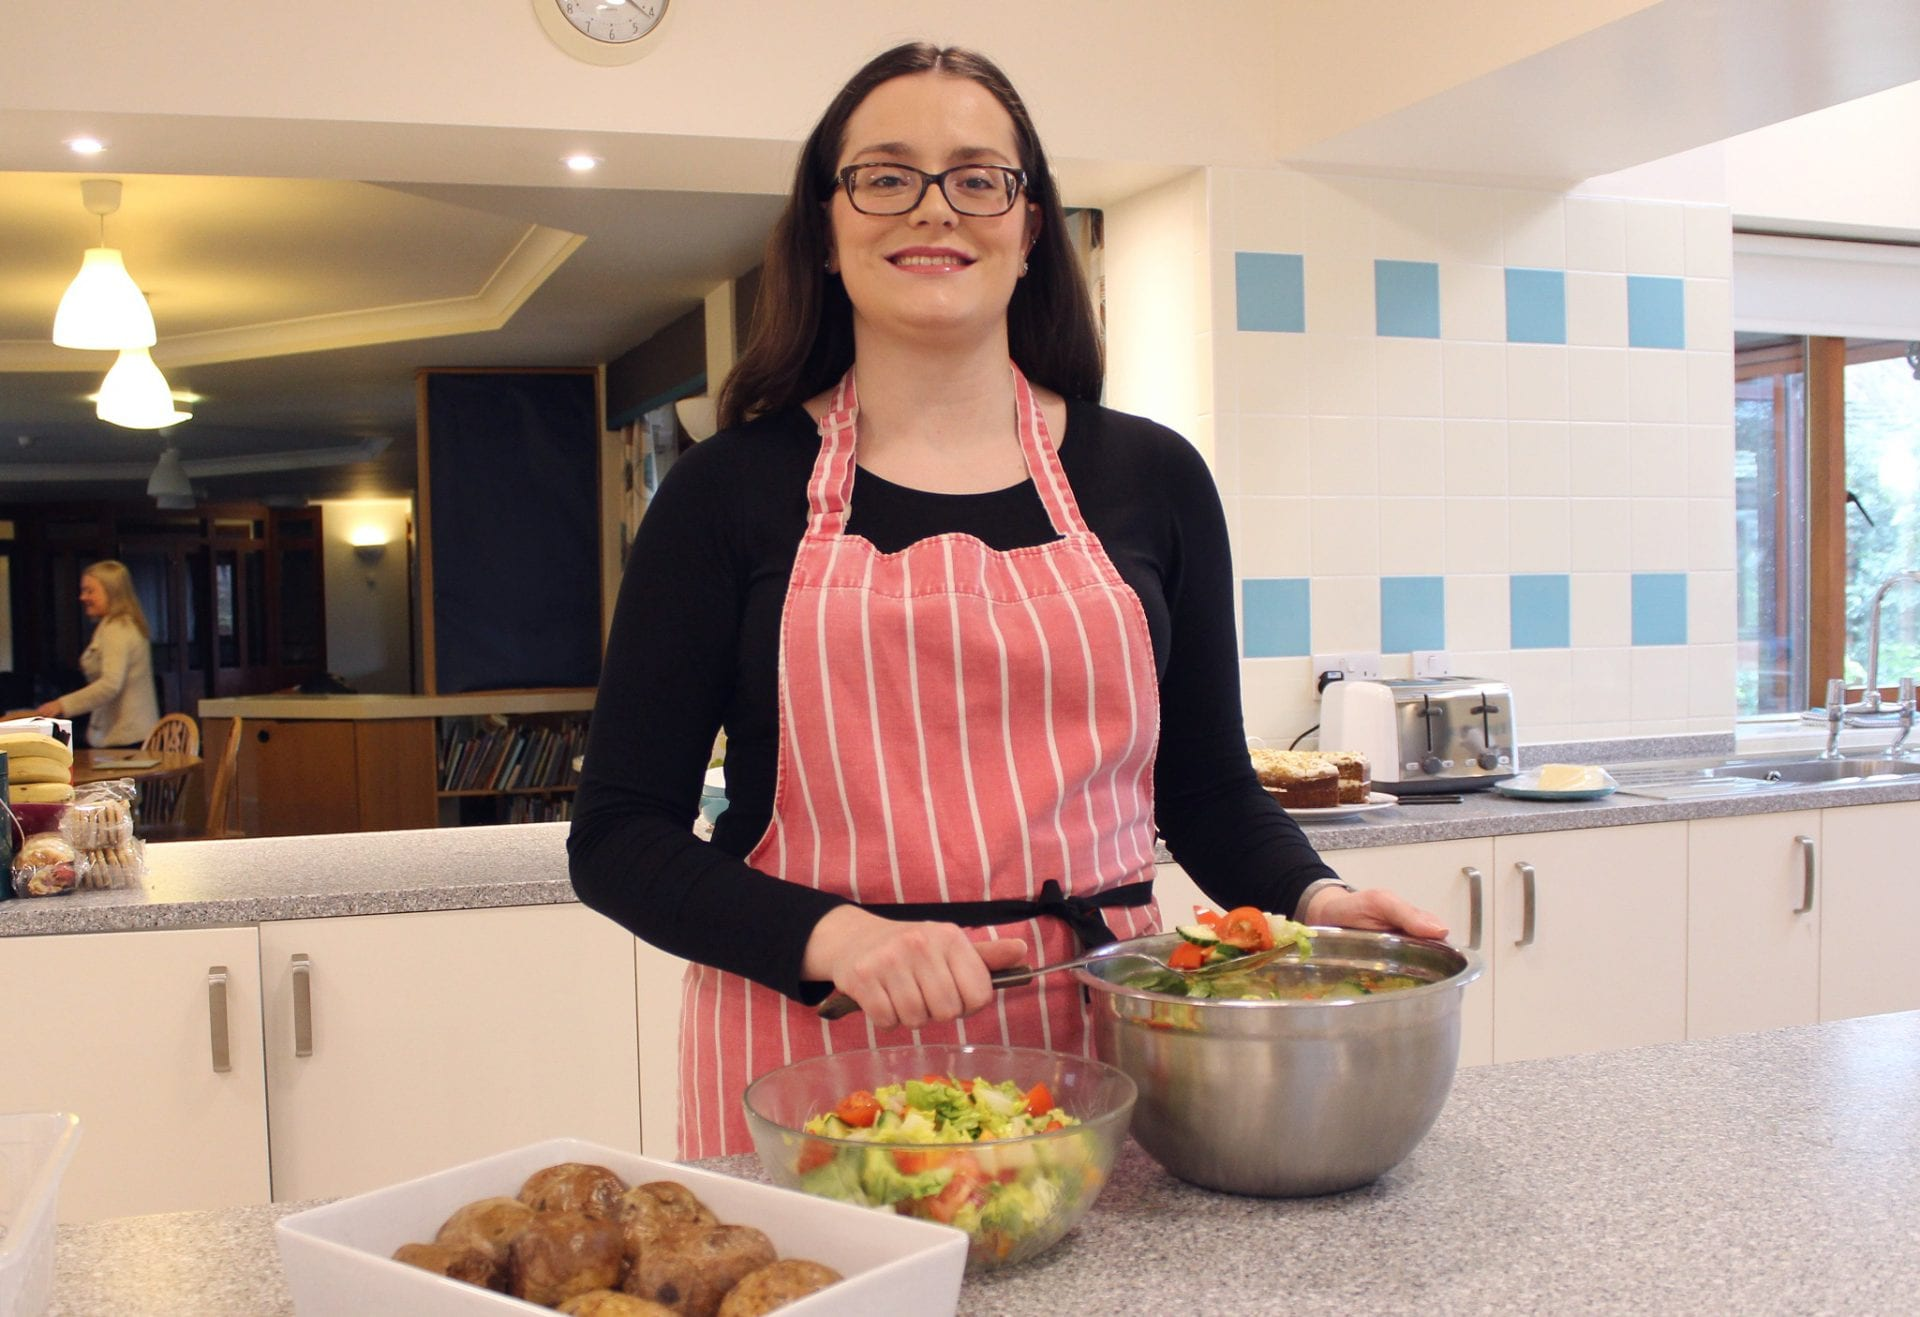 Laura preparing meals in the kitchen